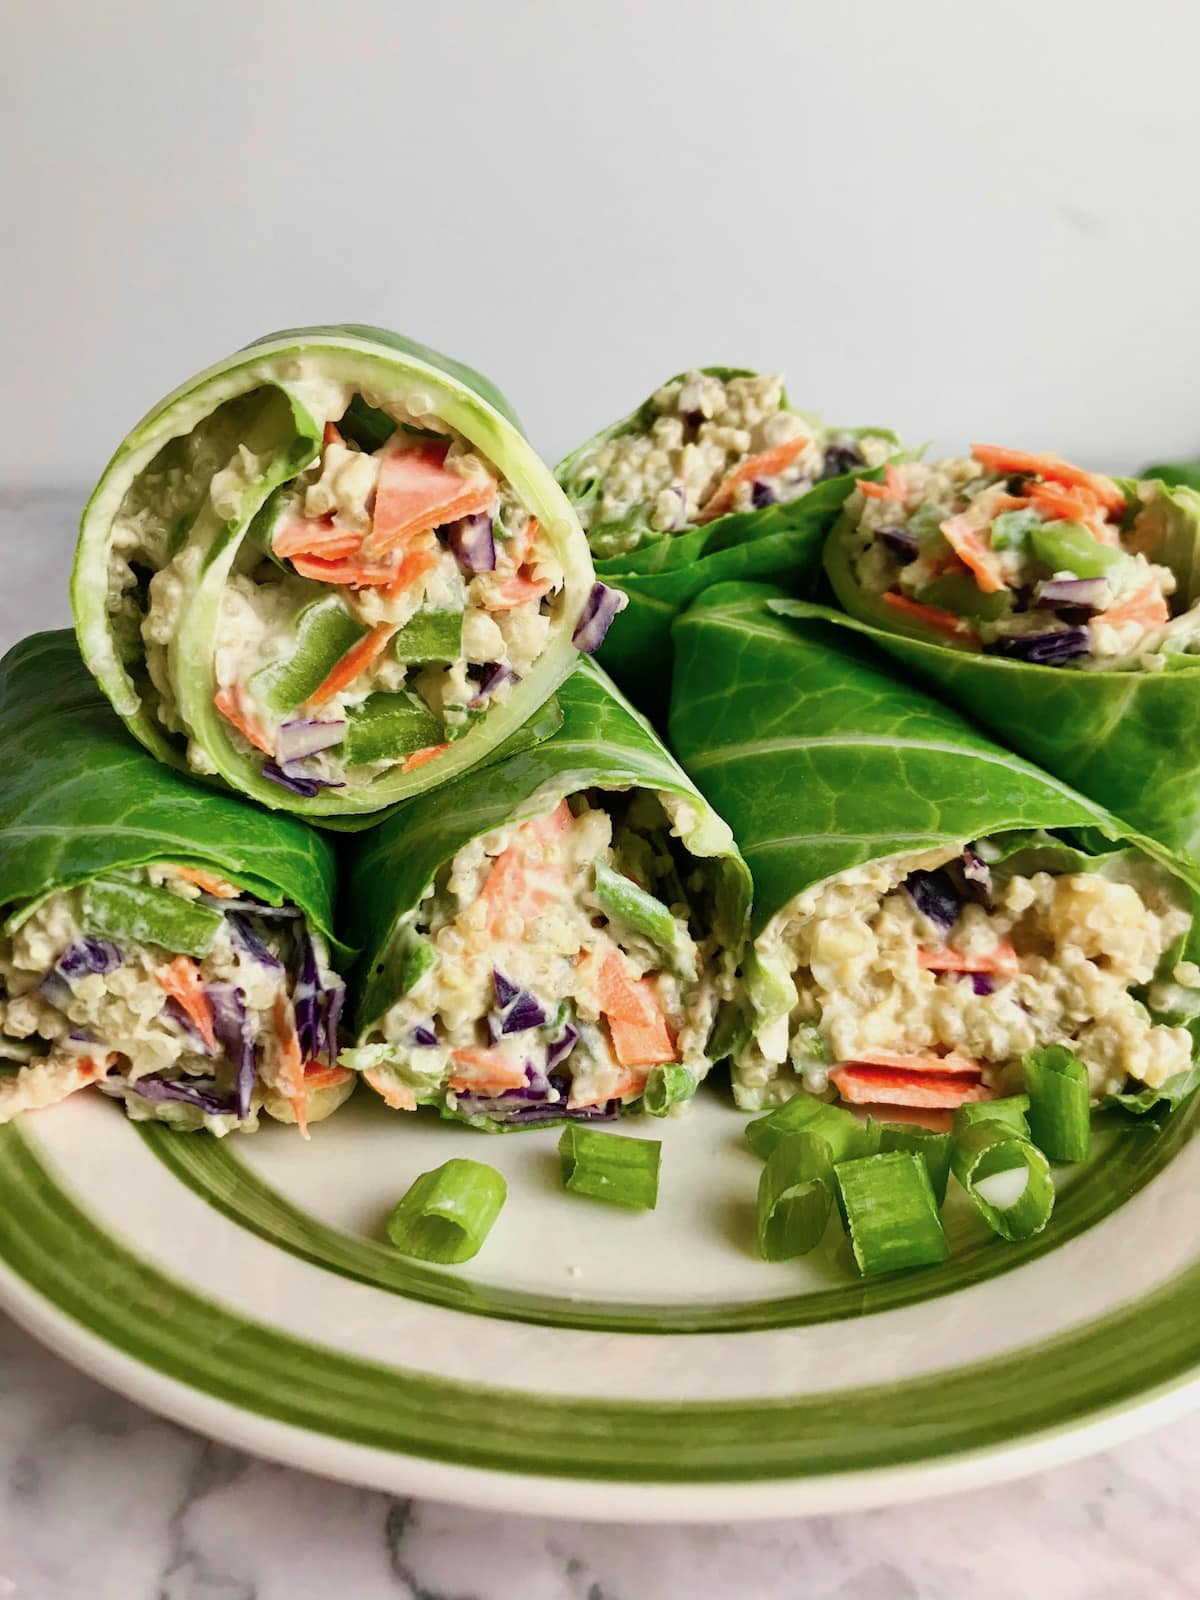 A pile of vegan collard green wraps on a plate, filled with quinoa and veggies.